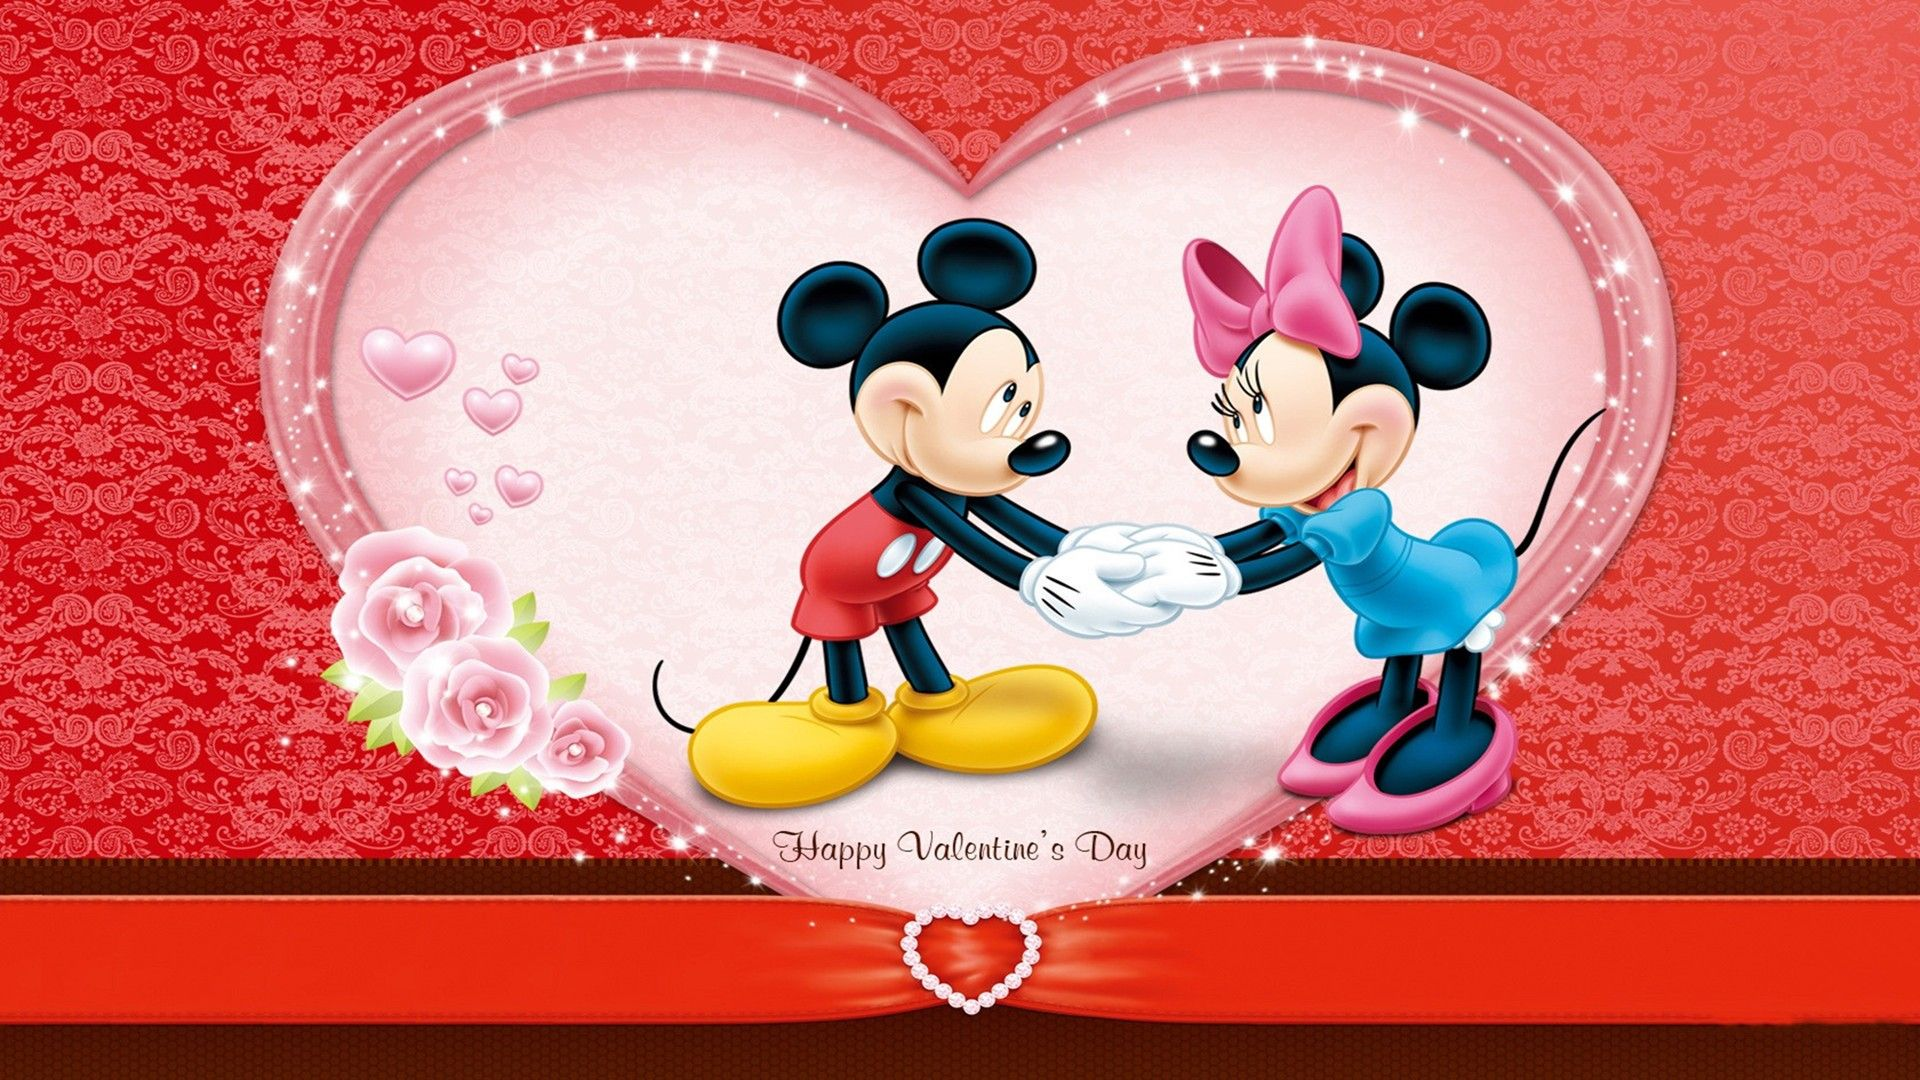 Happy Valentines Day Wishes Hearts Valentines Day Pinterest